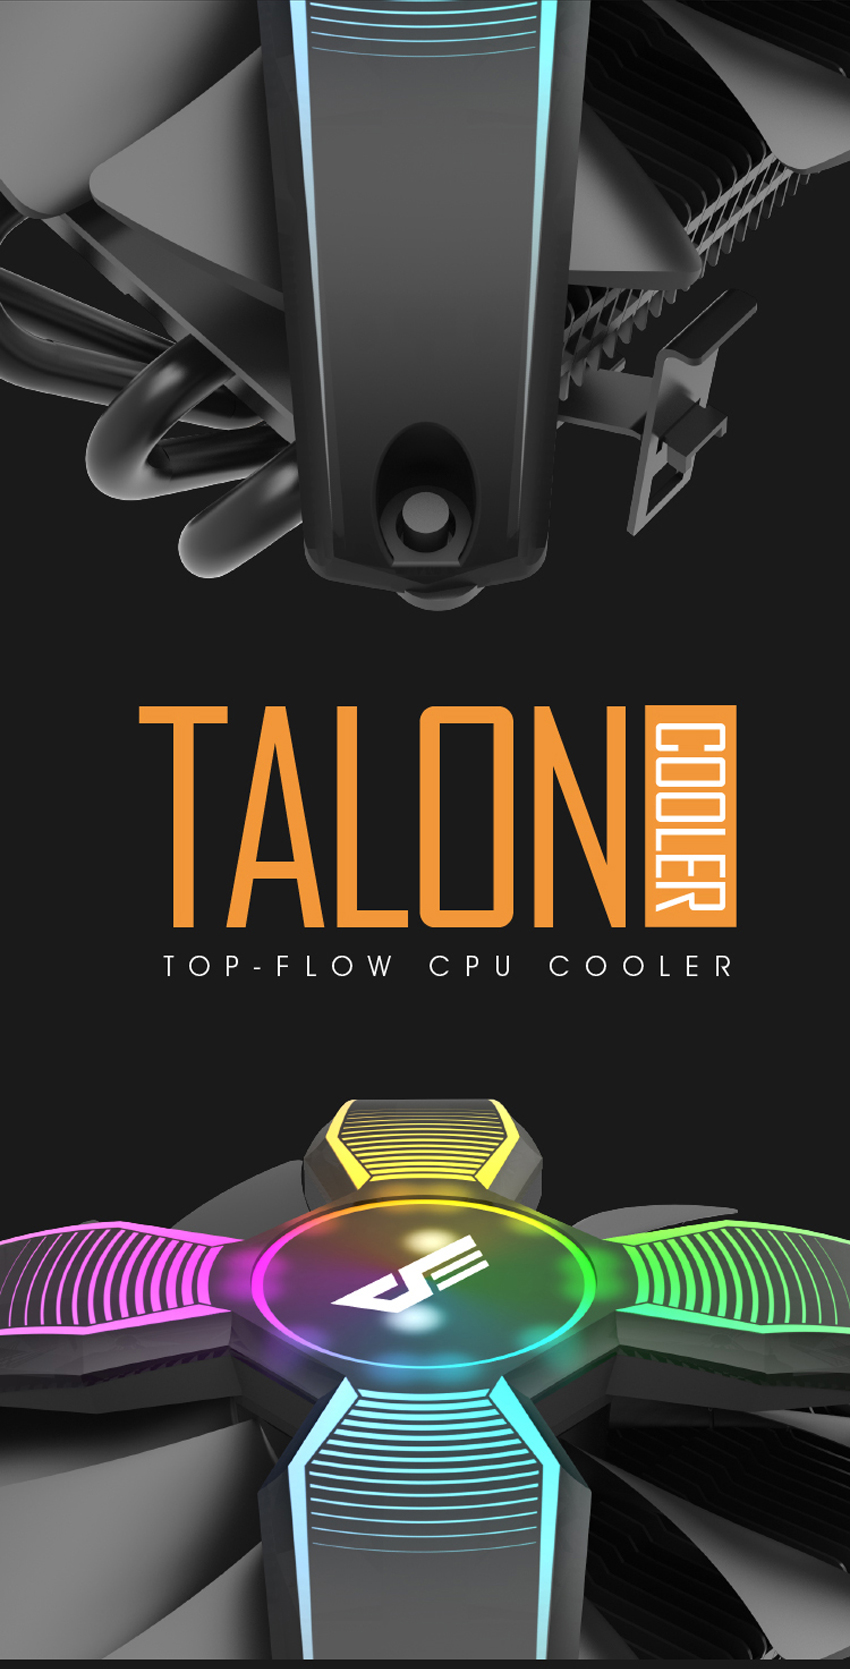 20190325-Talon-Cooler__03